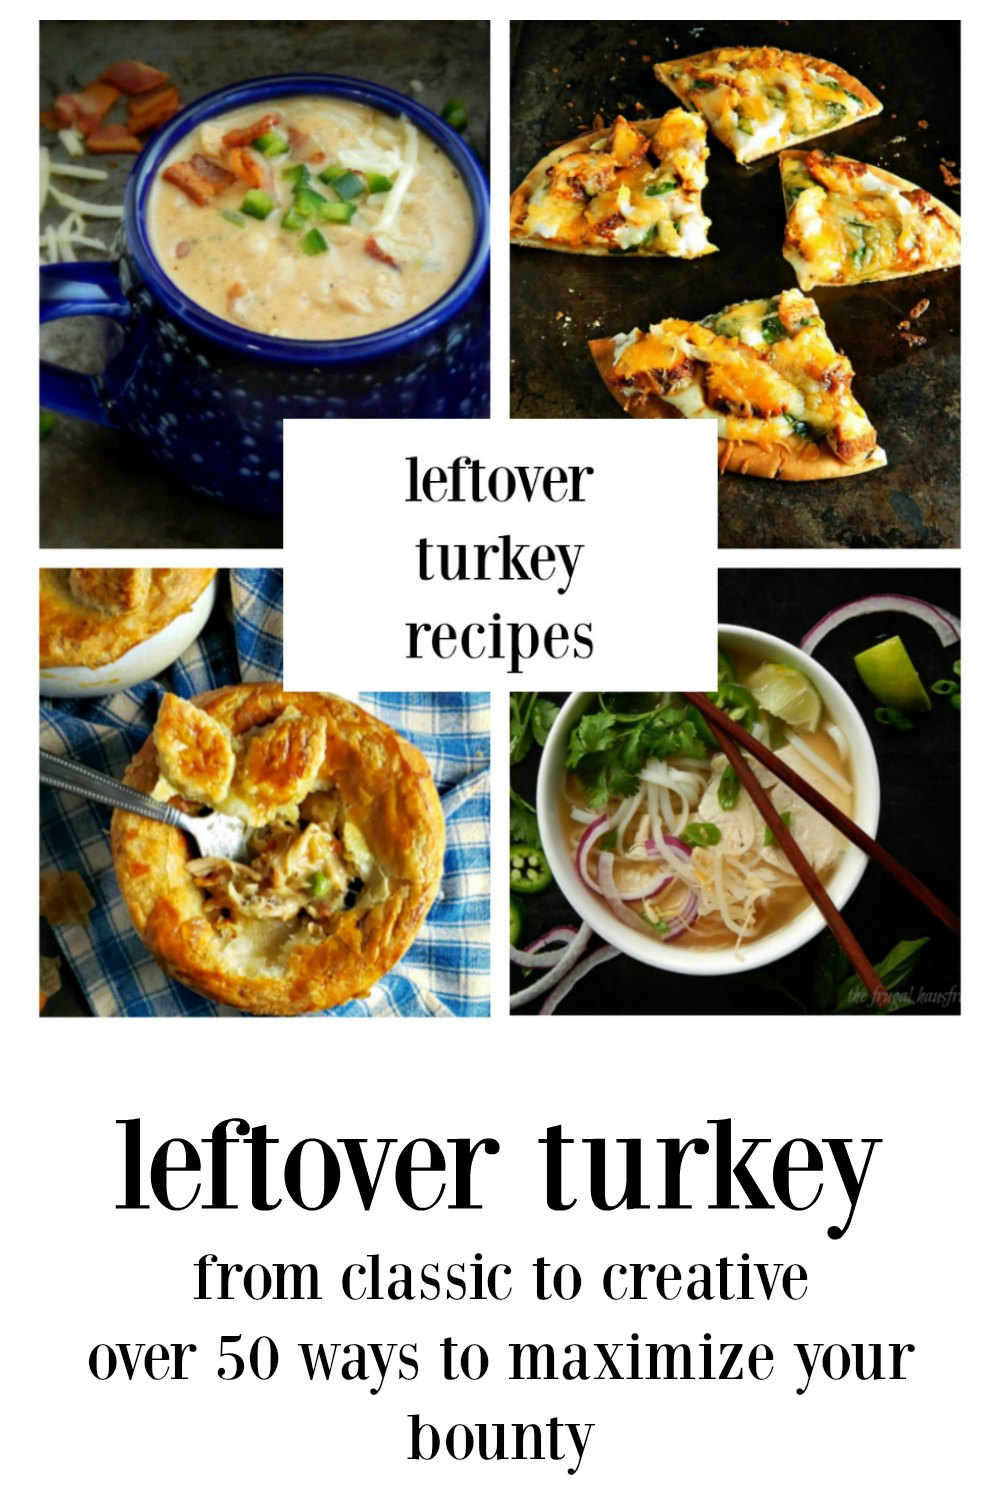 12 Days of Turkey - over 50 recipes from around the globe for your leftover turkey. From down-home to trendy you're gonna find inspiration here! #LeftoverTurkey #ThanksgivingLeftovers #HolidayLeftovers